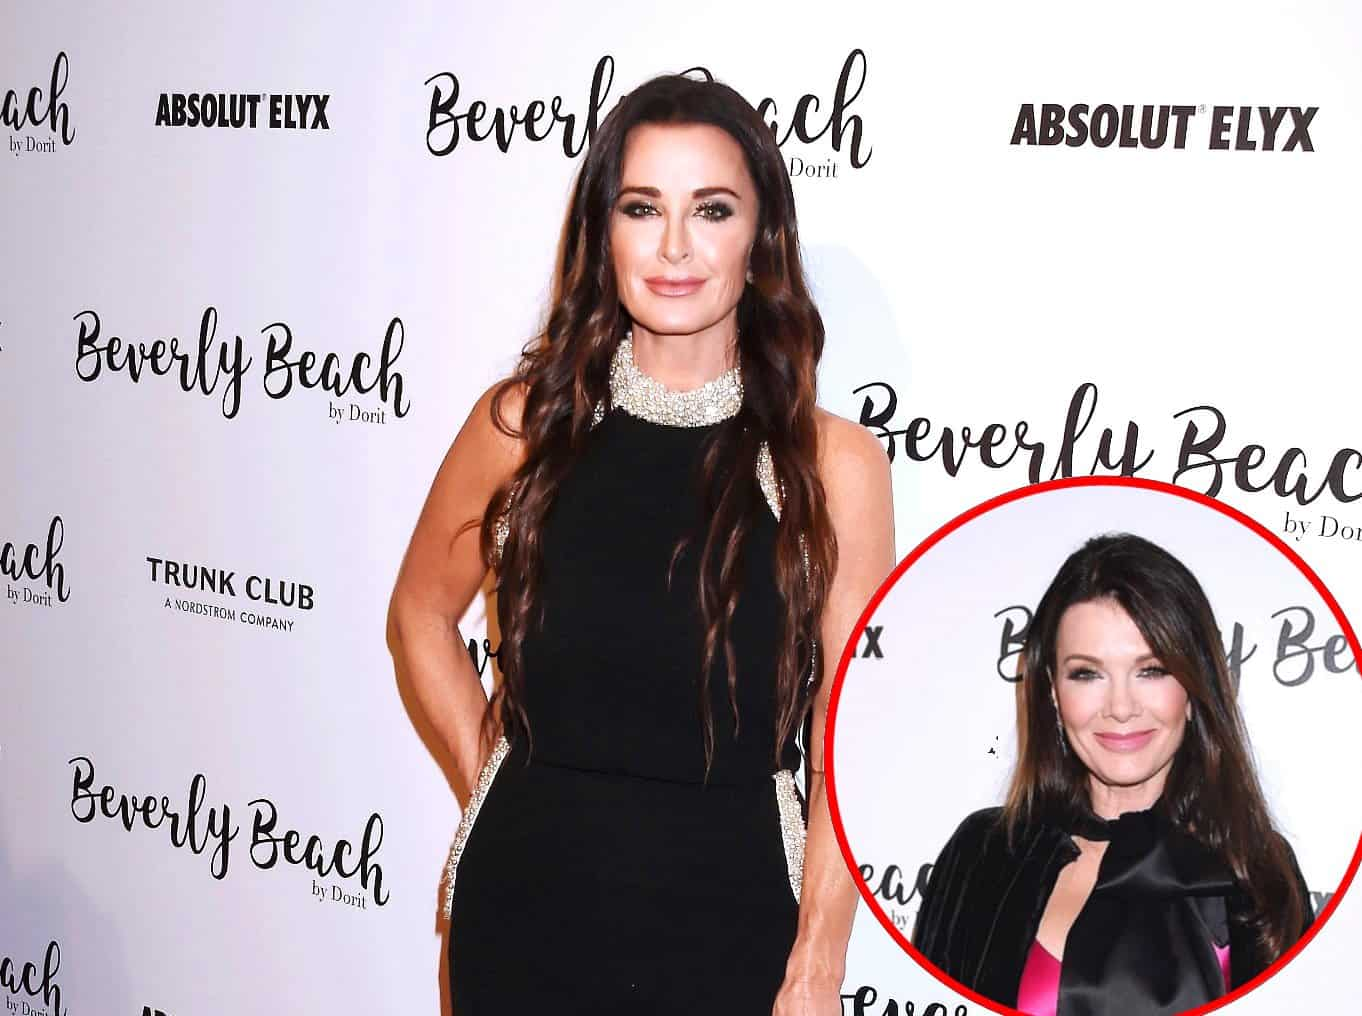 Kyle Richards Says Many RHOBH Cast Members are 'Not Talking' to Each Other, Talks Feeling 'Lots of Anxiety' After Lisa Vanderpump's Exit Amid Plenty of Drama